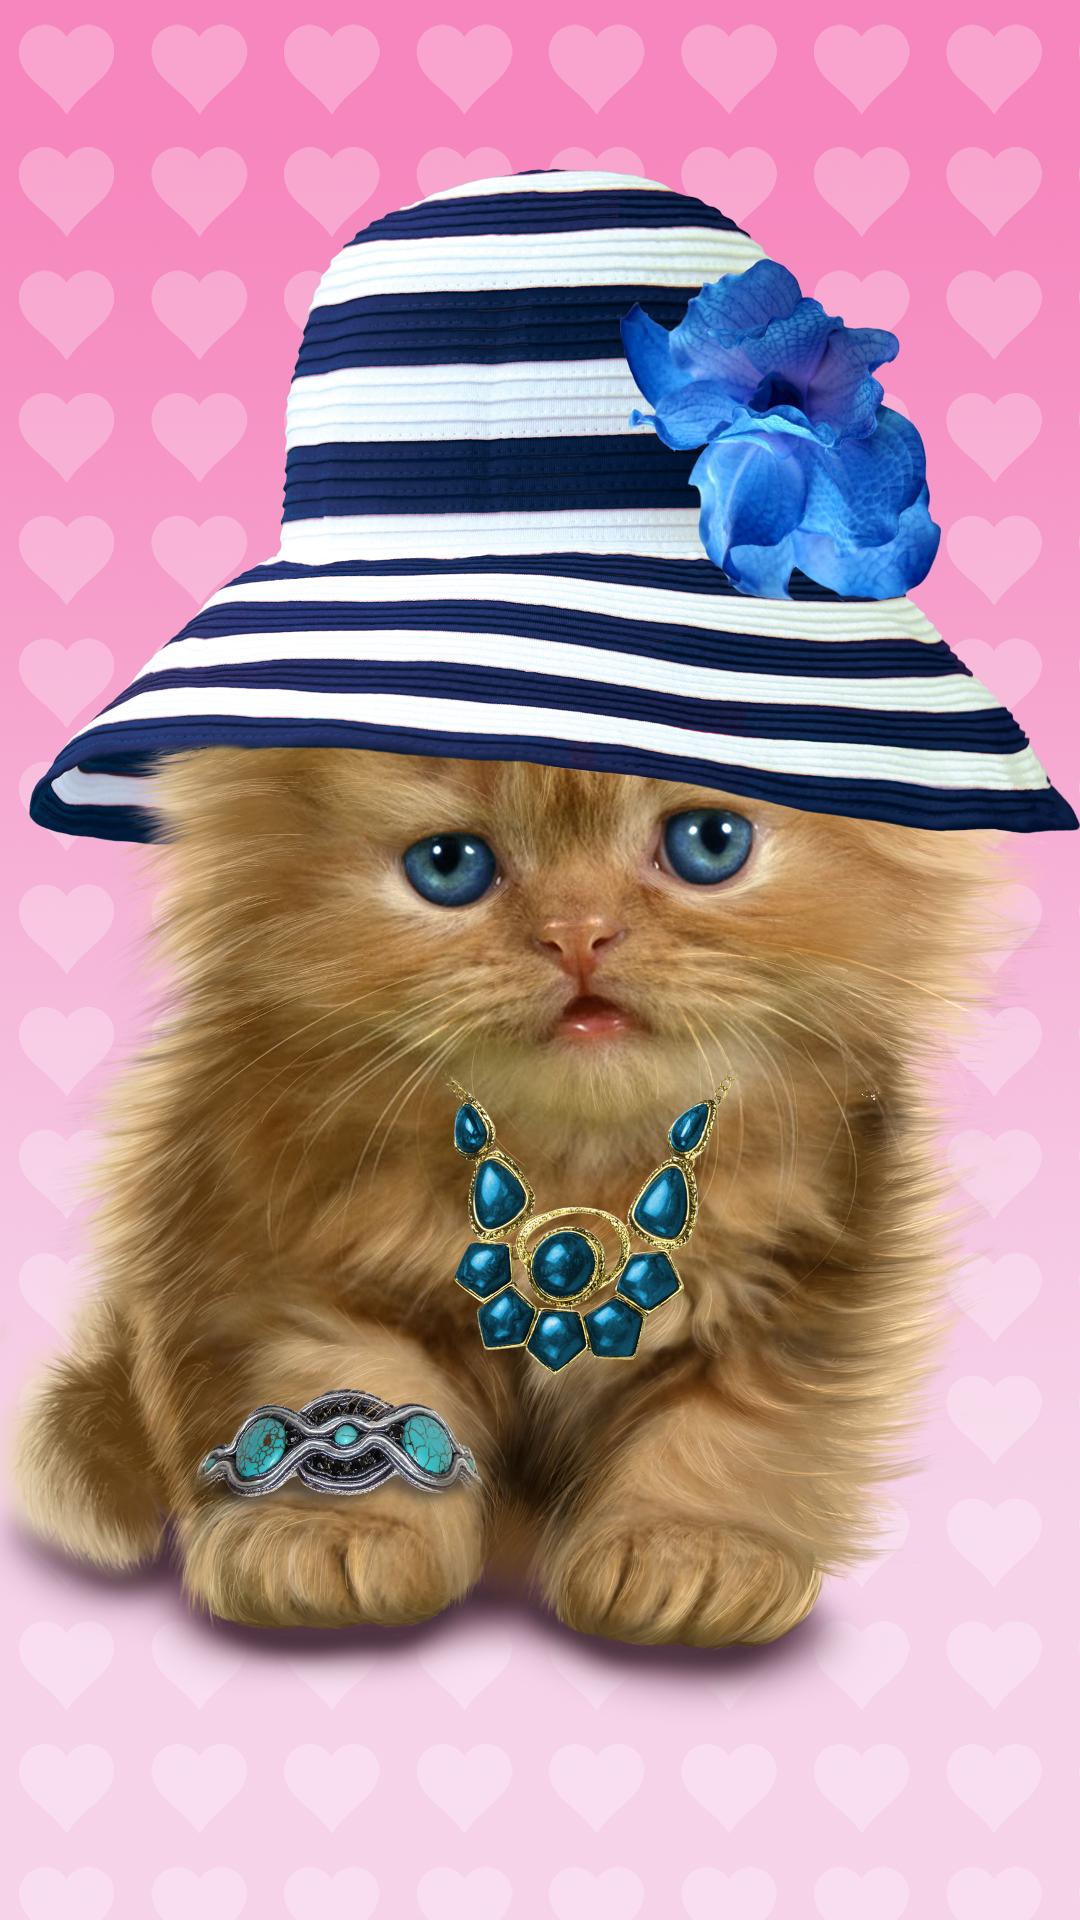 Baby Cat Cute Live Wallpaper For Android Apk Download